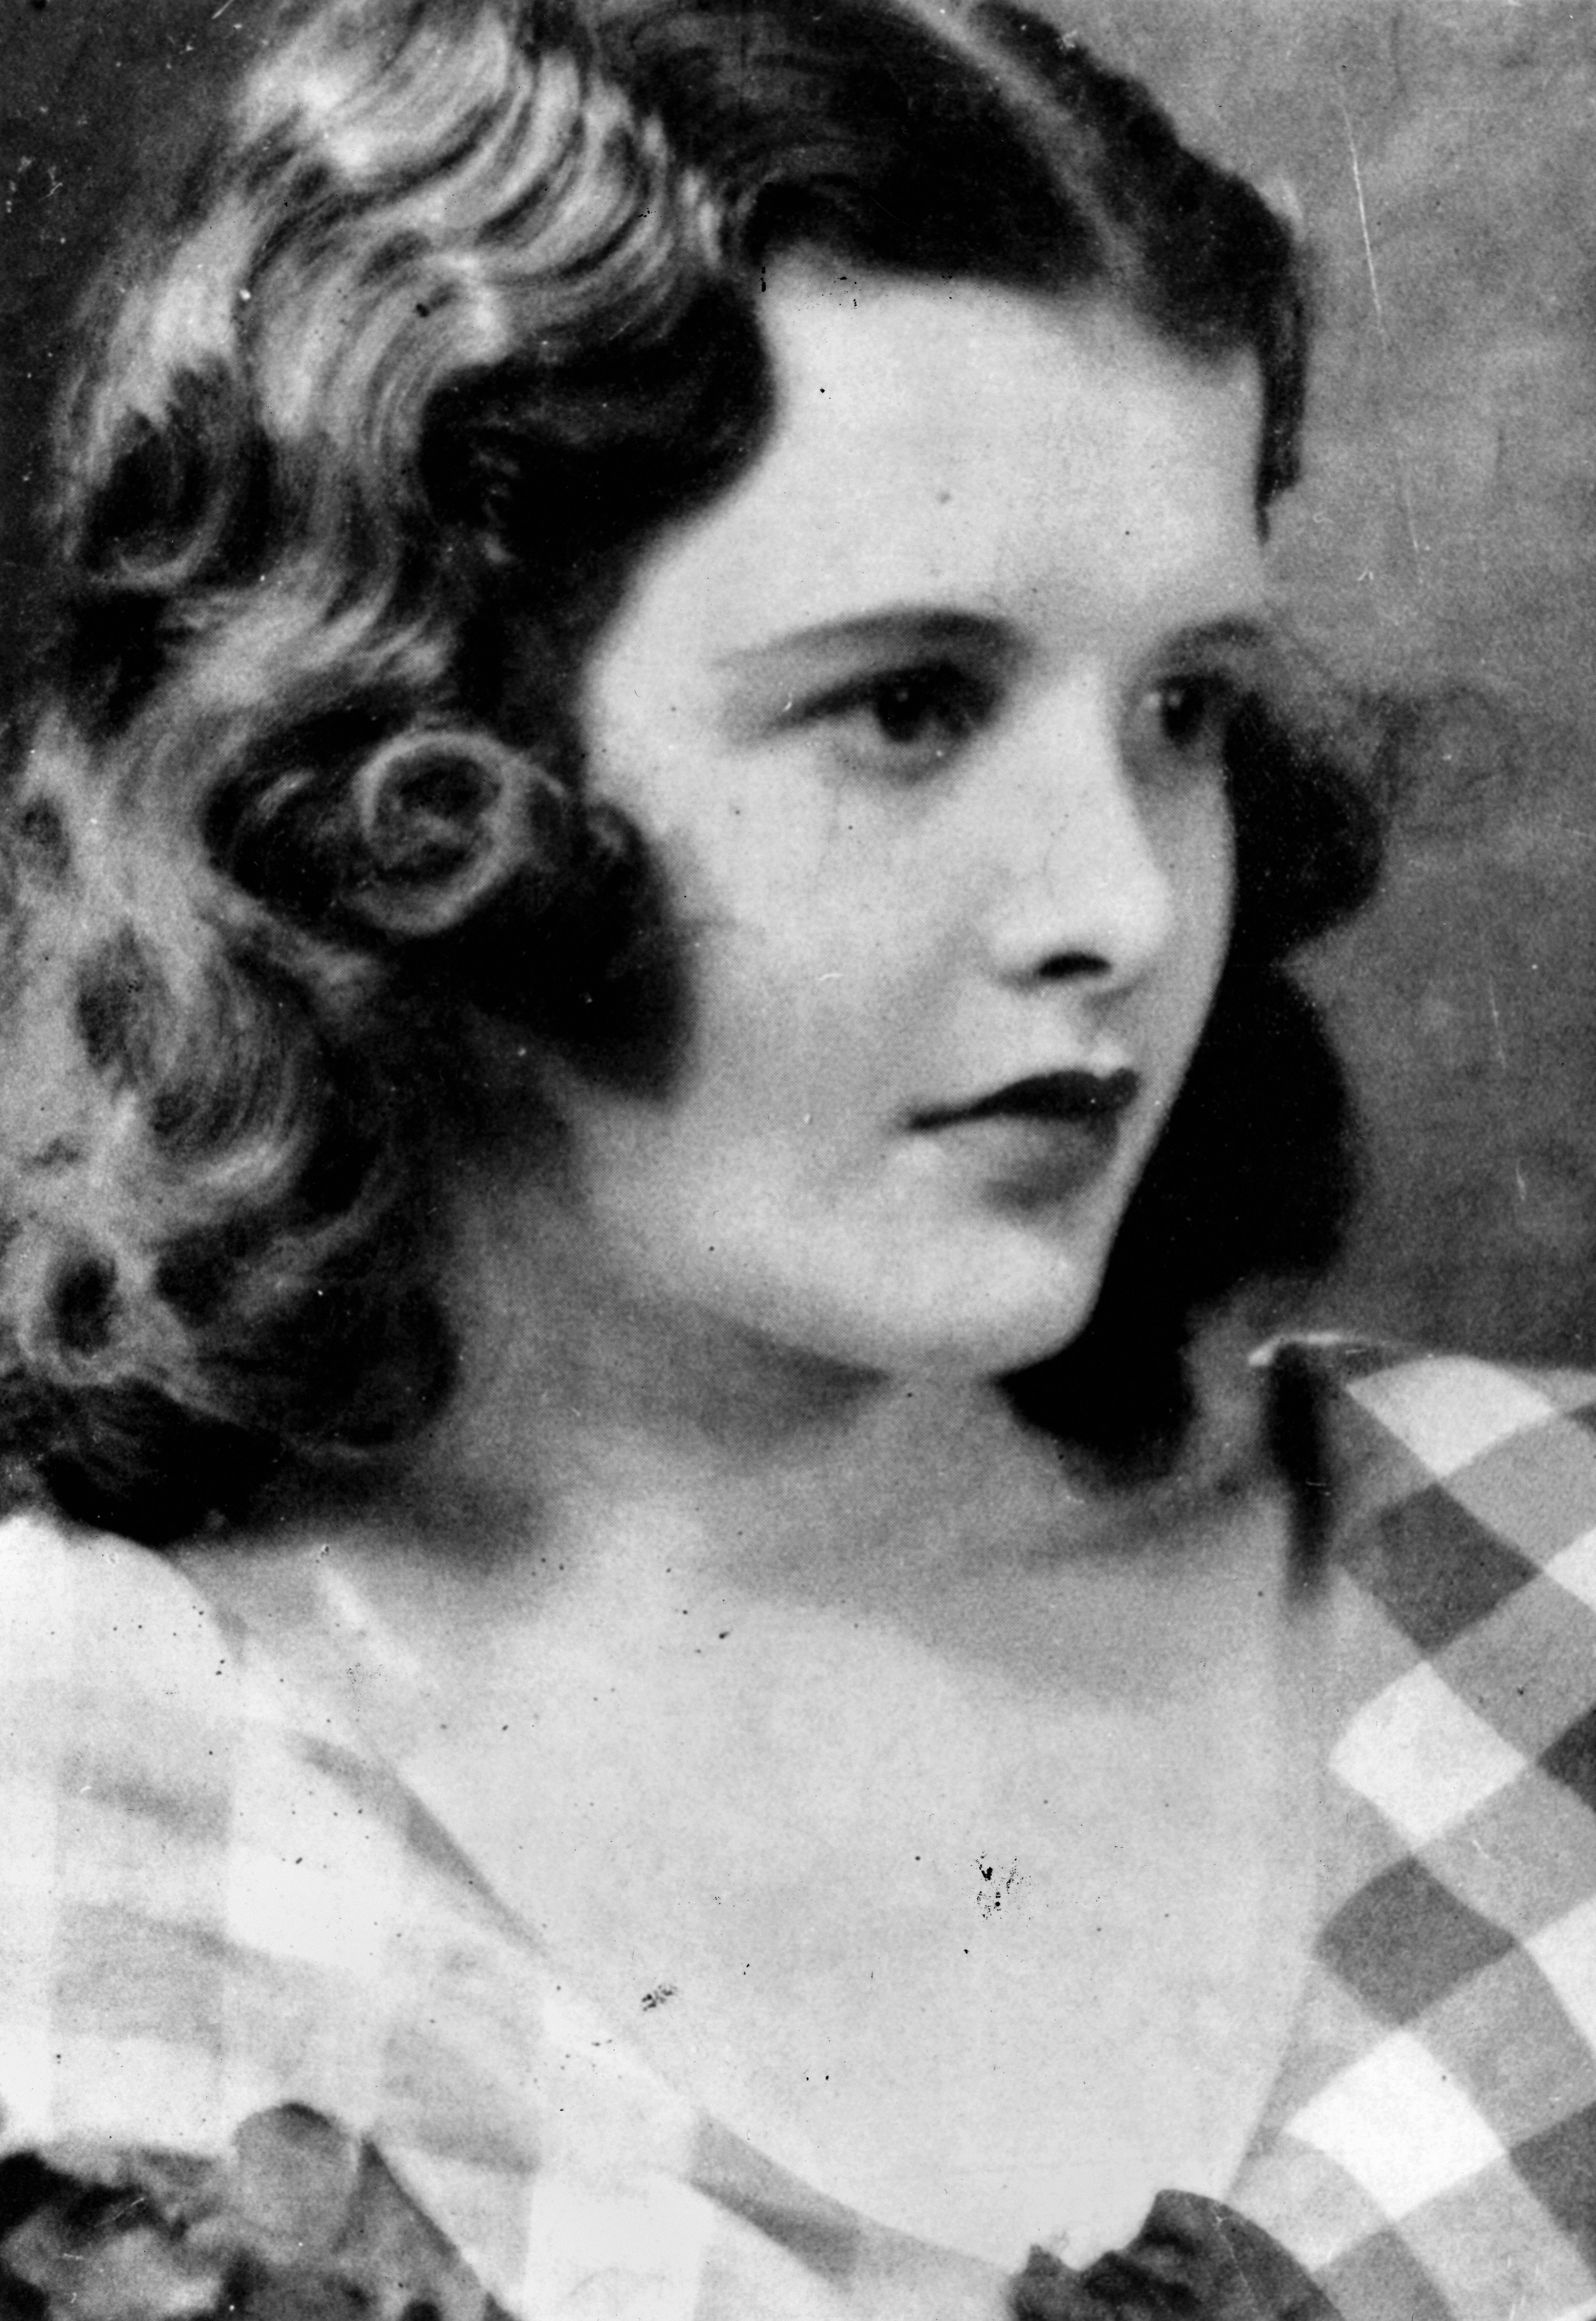 Mary about 1935